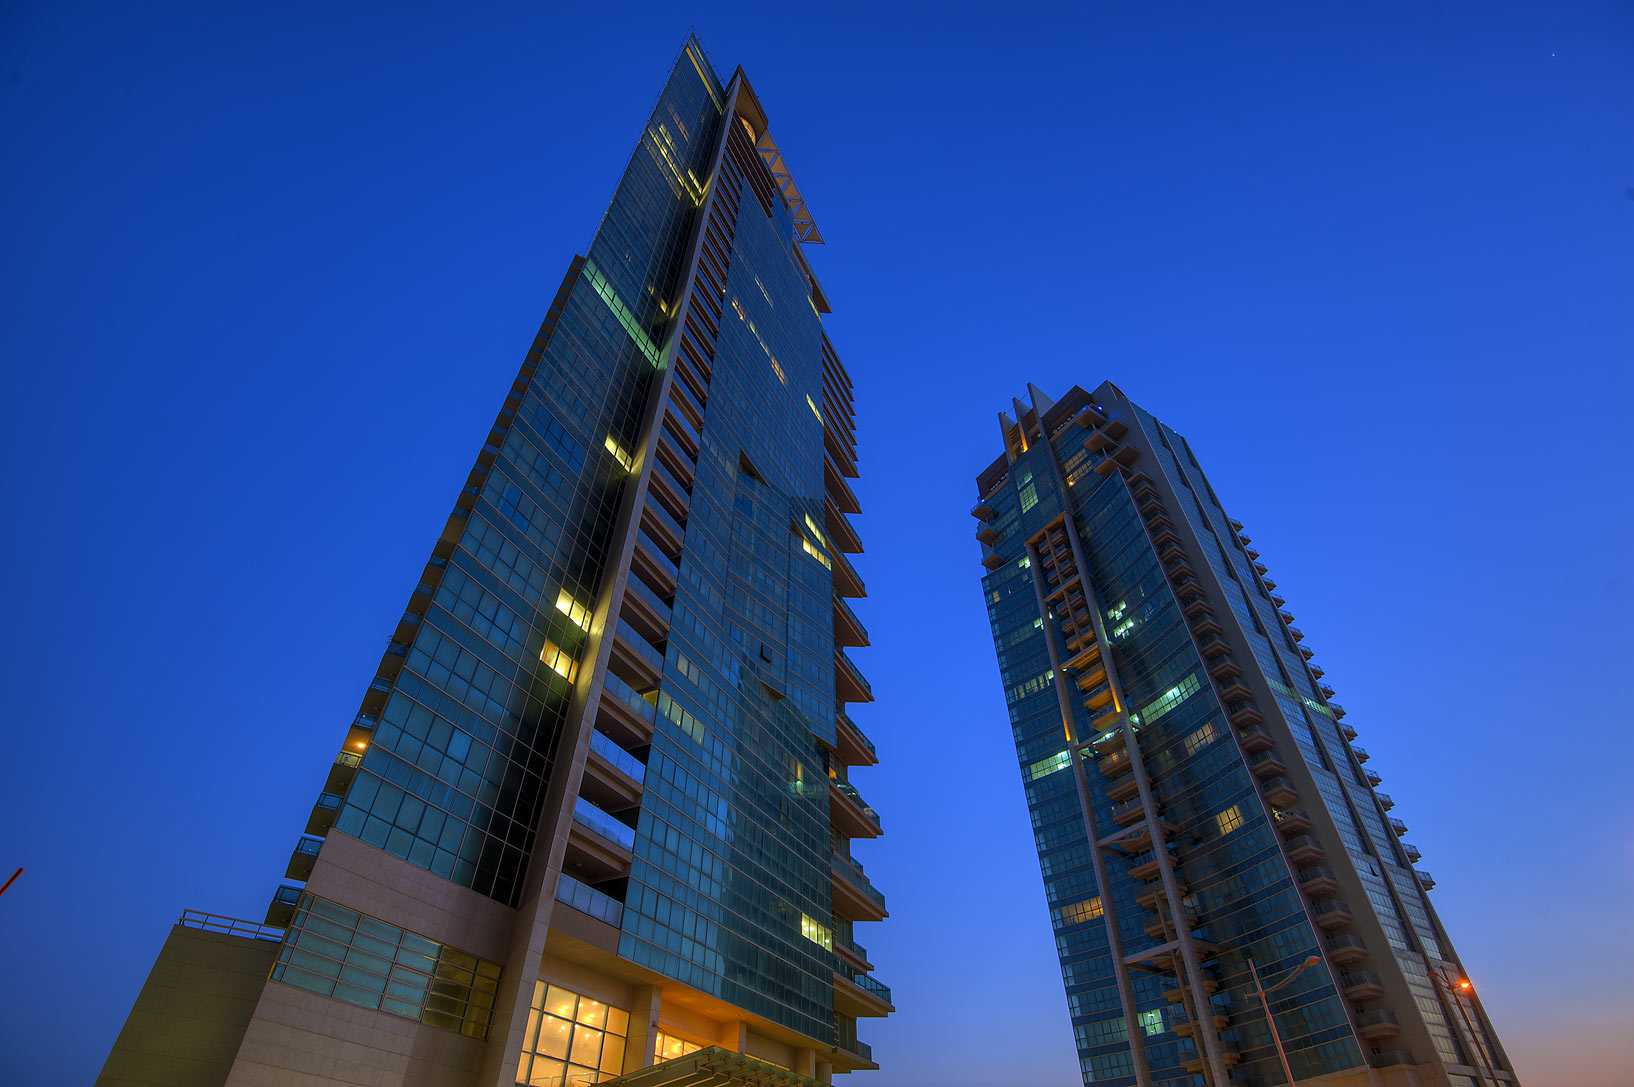 Al Rayyan and Al Reffa residential towers in West Bay. Doha, Qatar